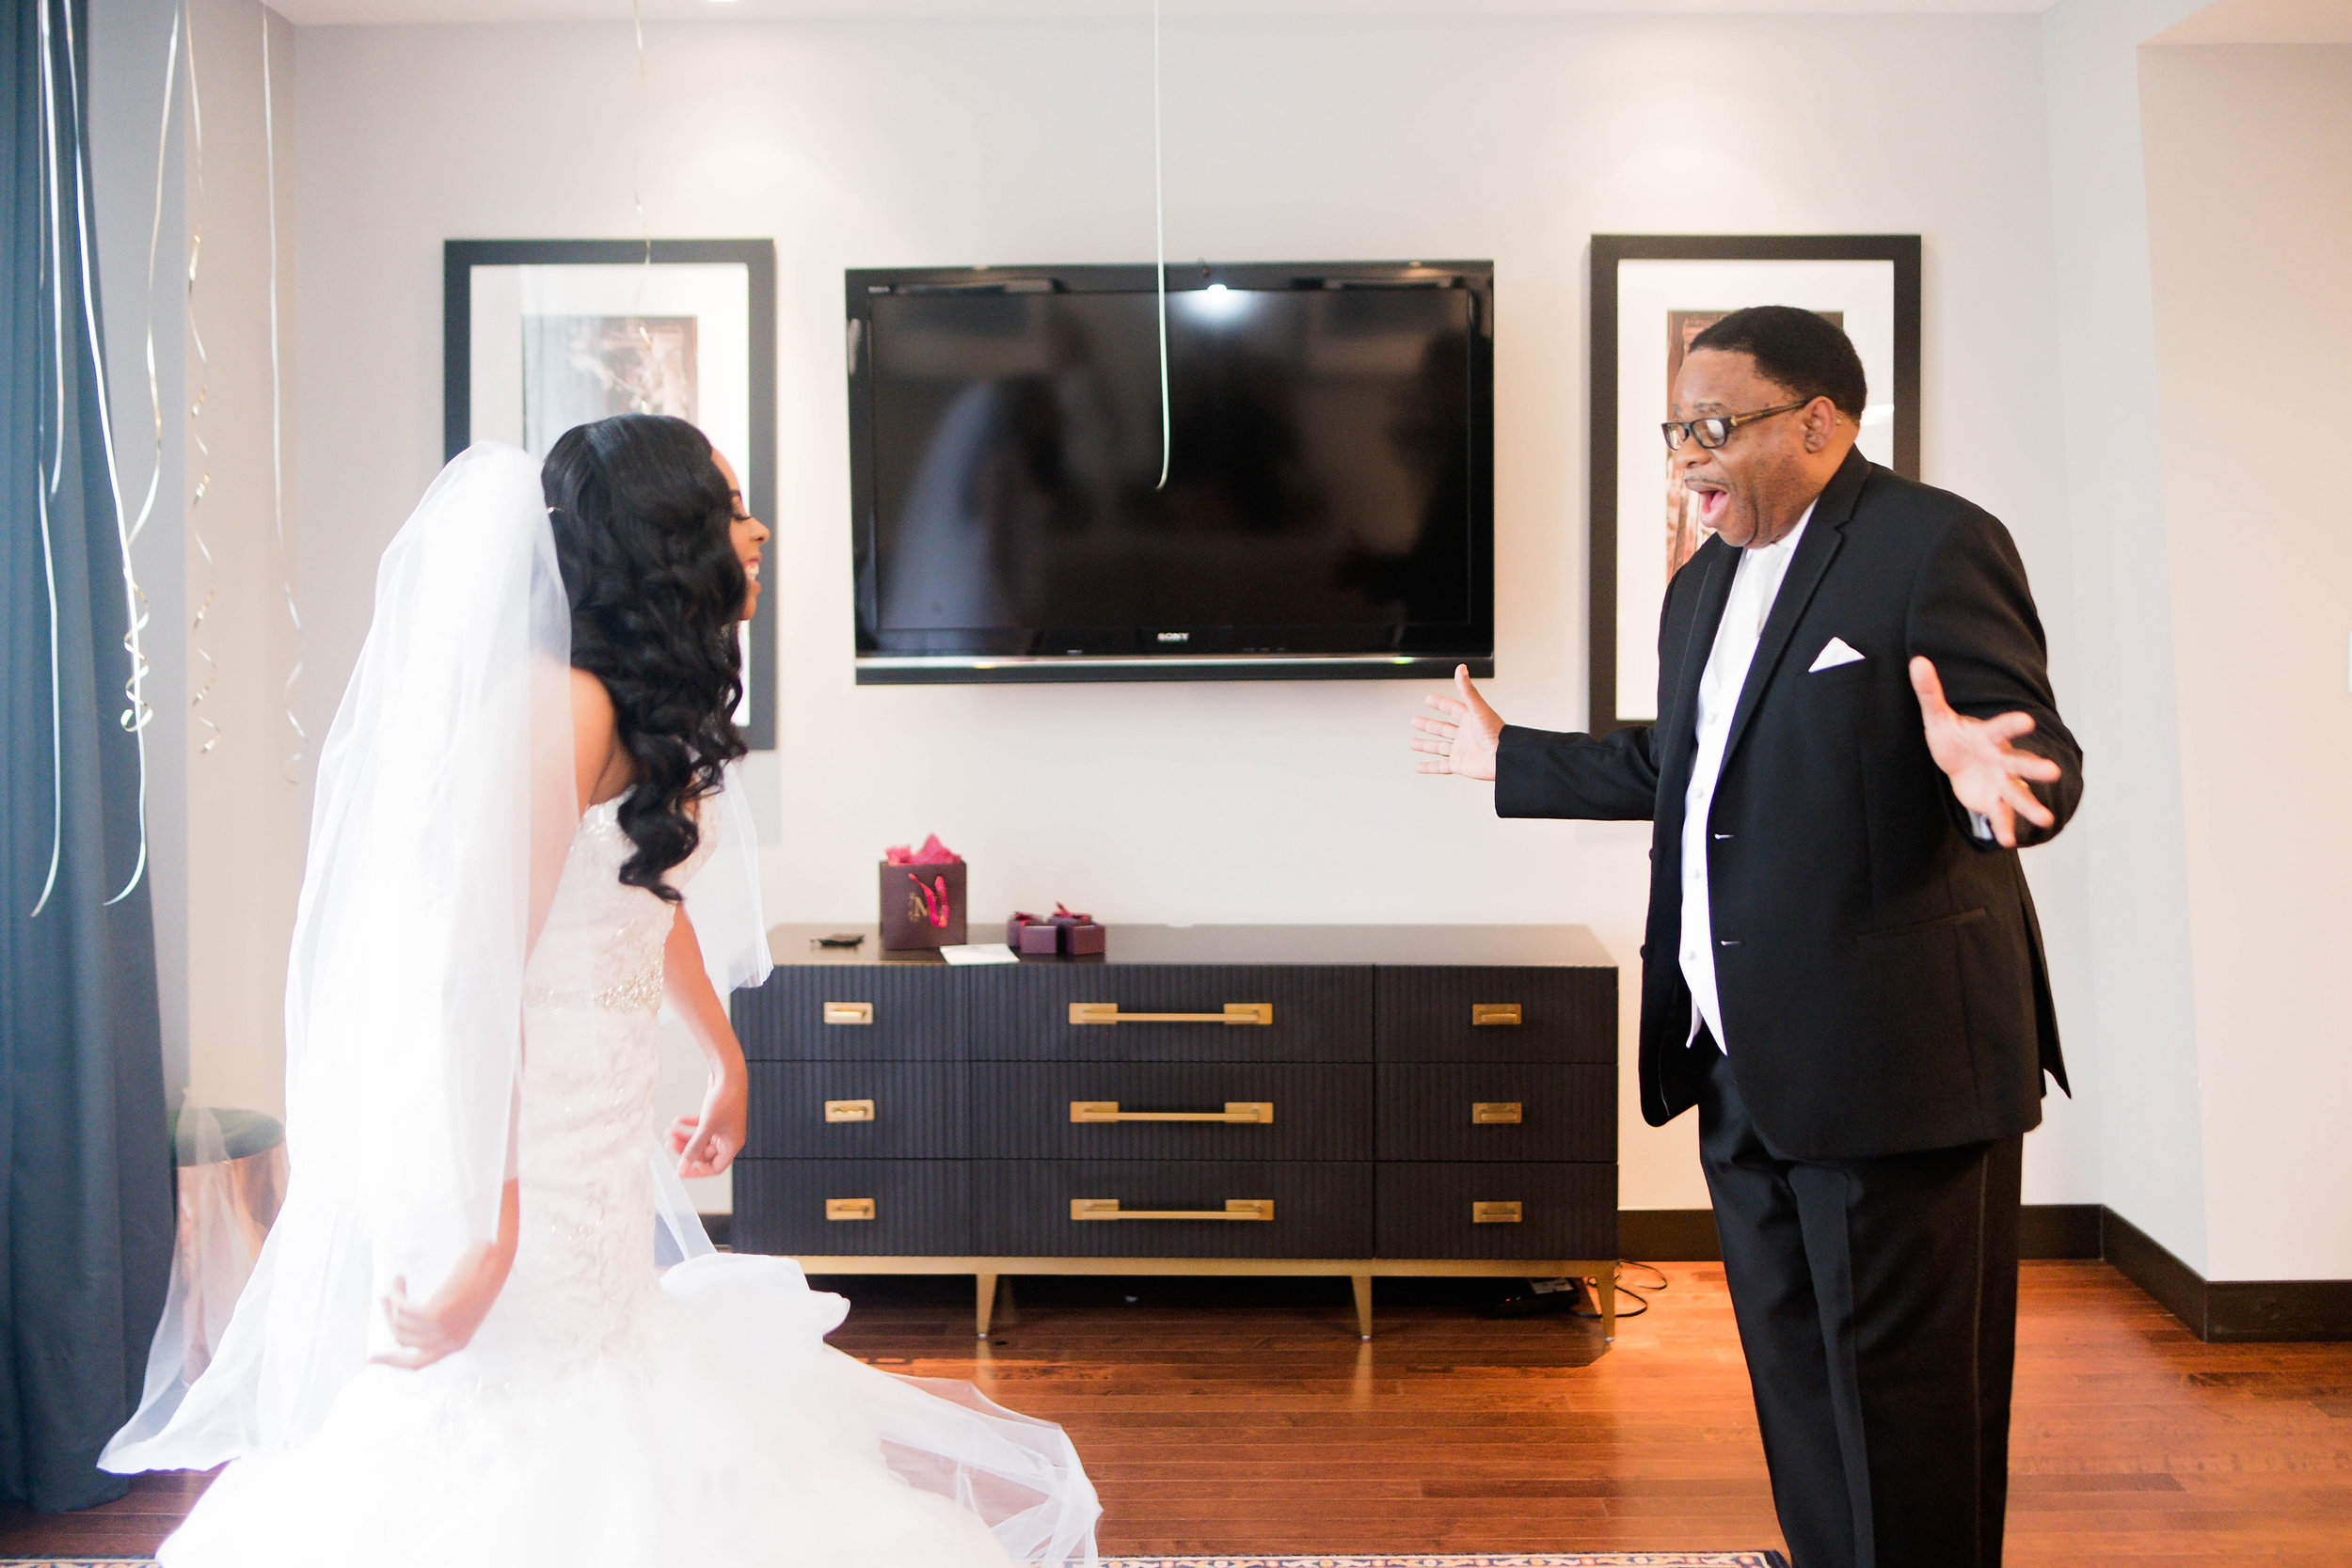 Tulsa Wedding- Pharris Photography- Getting Ready- Darla + Quinton -First Look at the Bride- Father Daughter